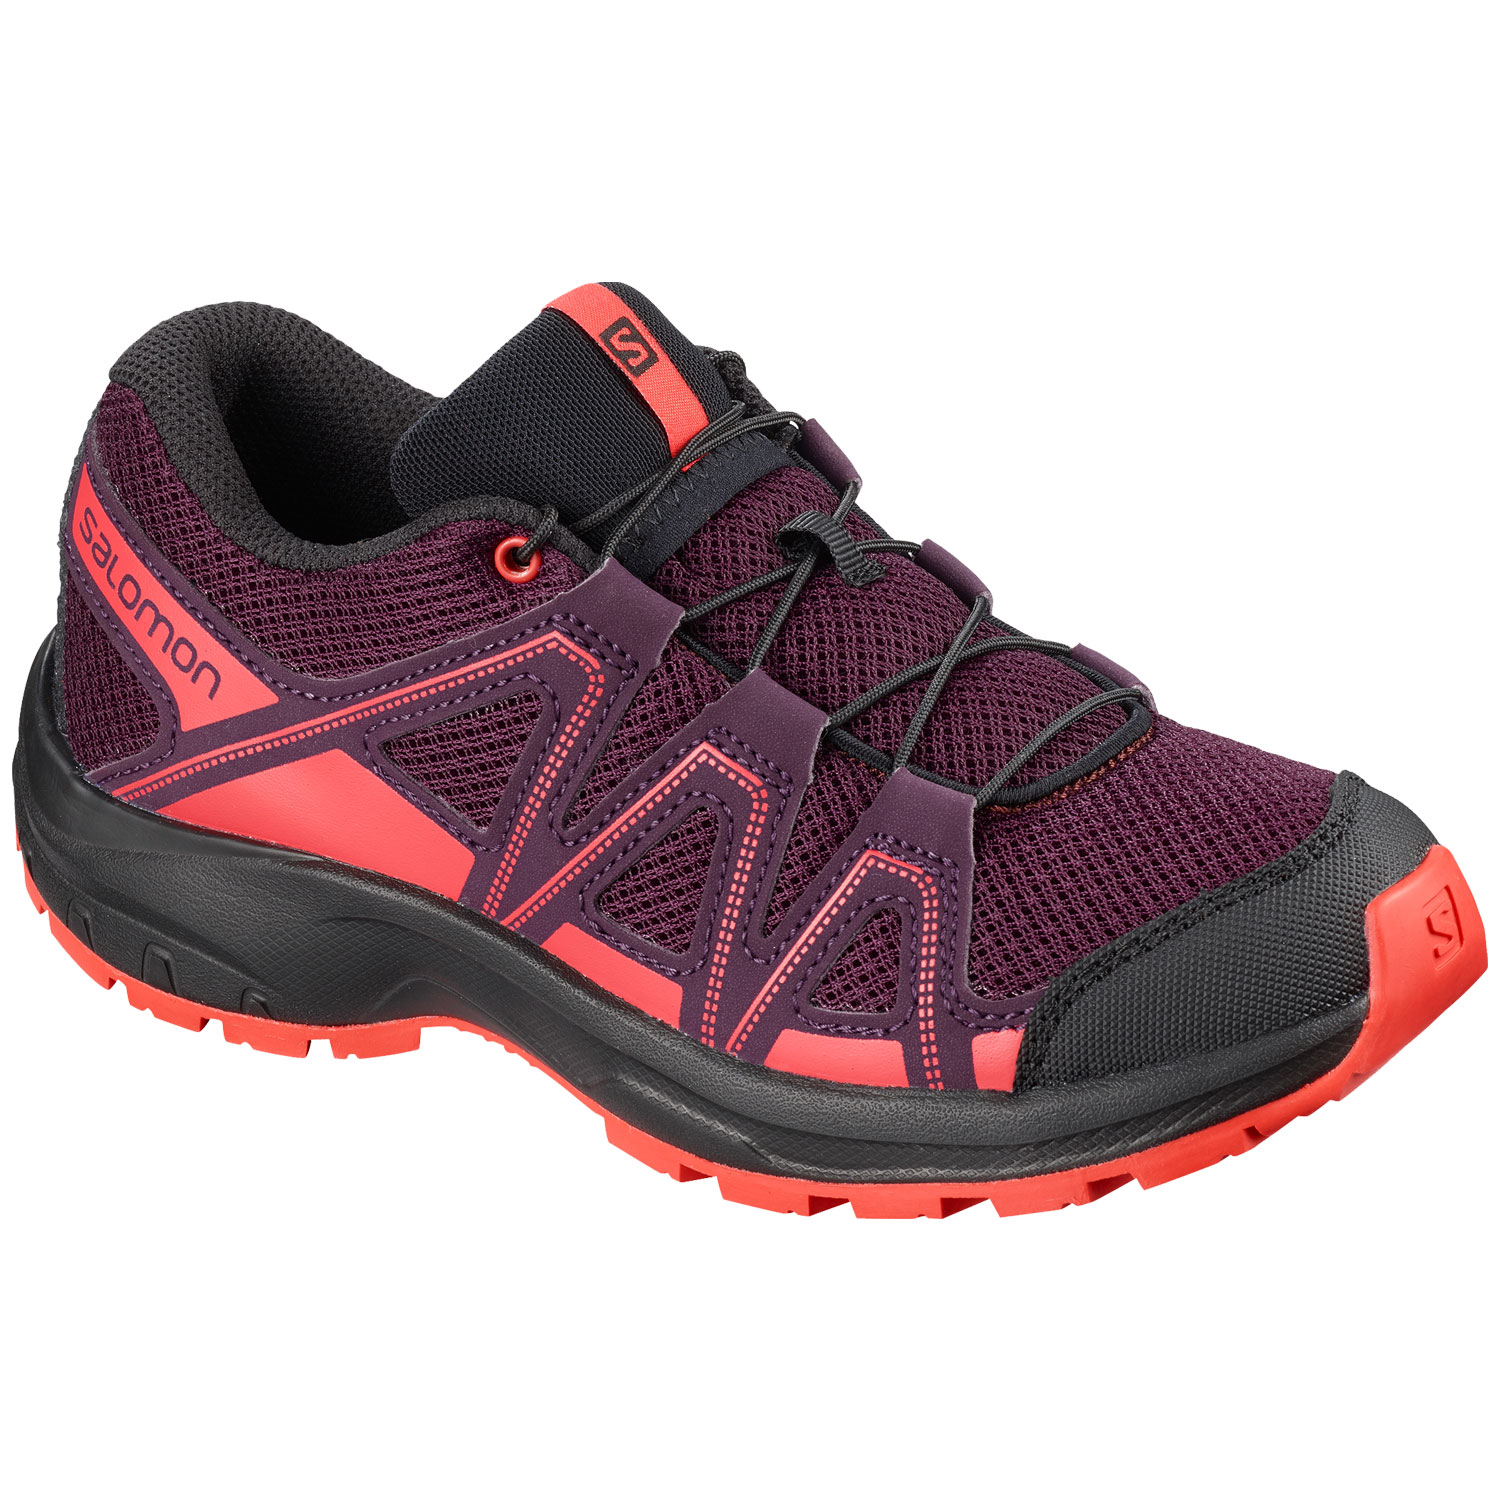 Salomon Kicka J Kinder Hikingschuhe